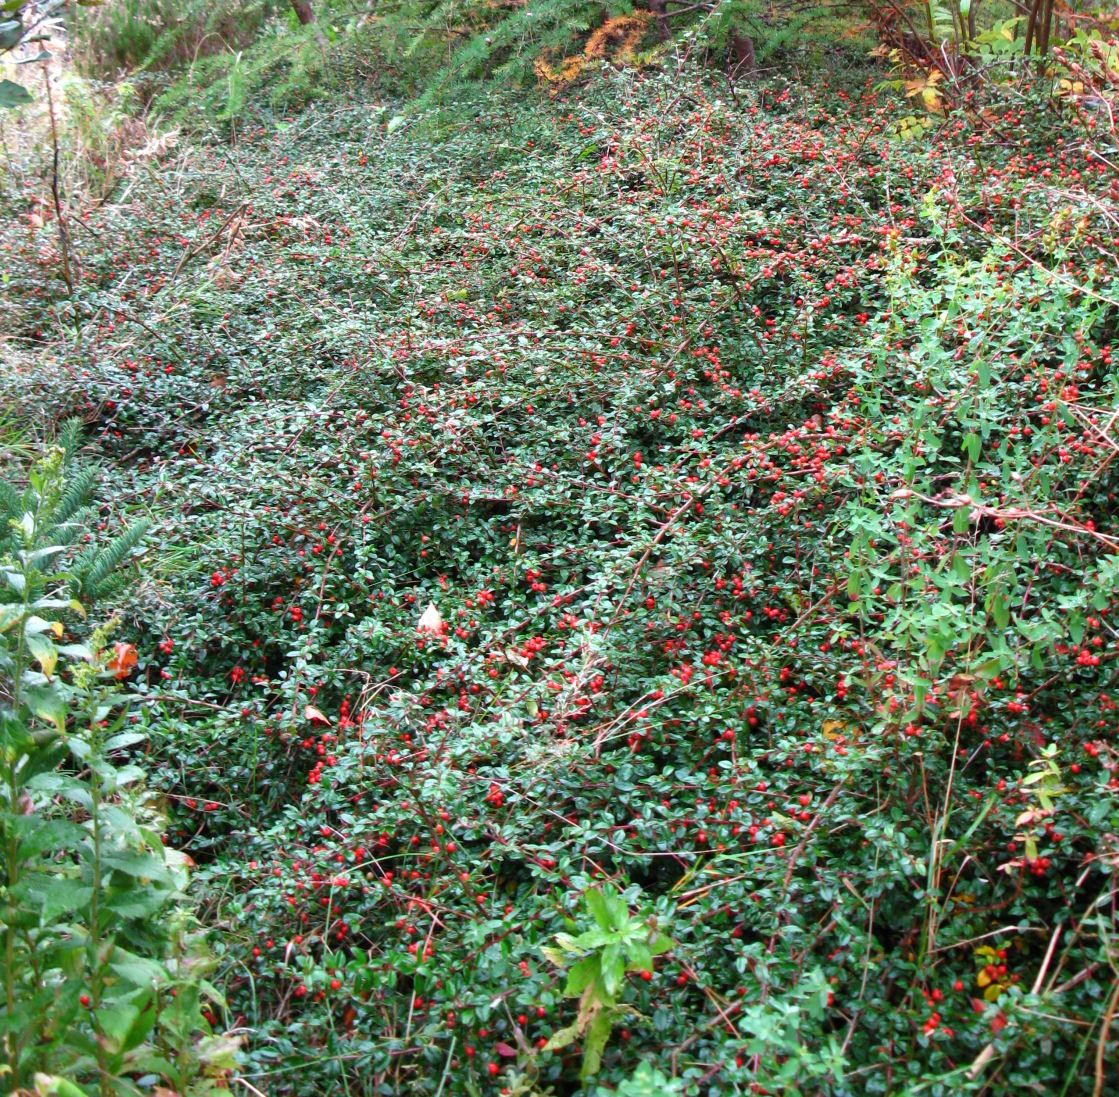 Evergreen shrub with pink or white flowers and dark berries home cotoneaster dammeri 39 coral beauty 39 a evergreen shrub with mightylinksfo Image collections